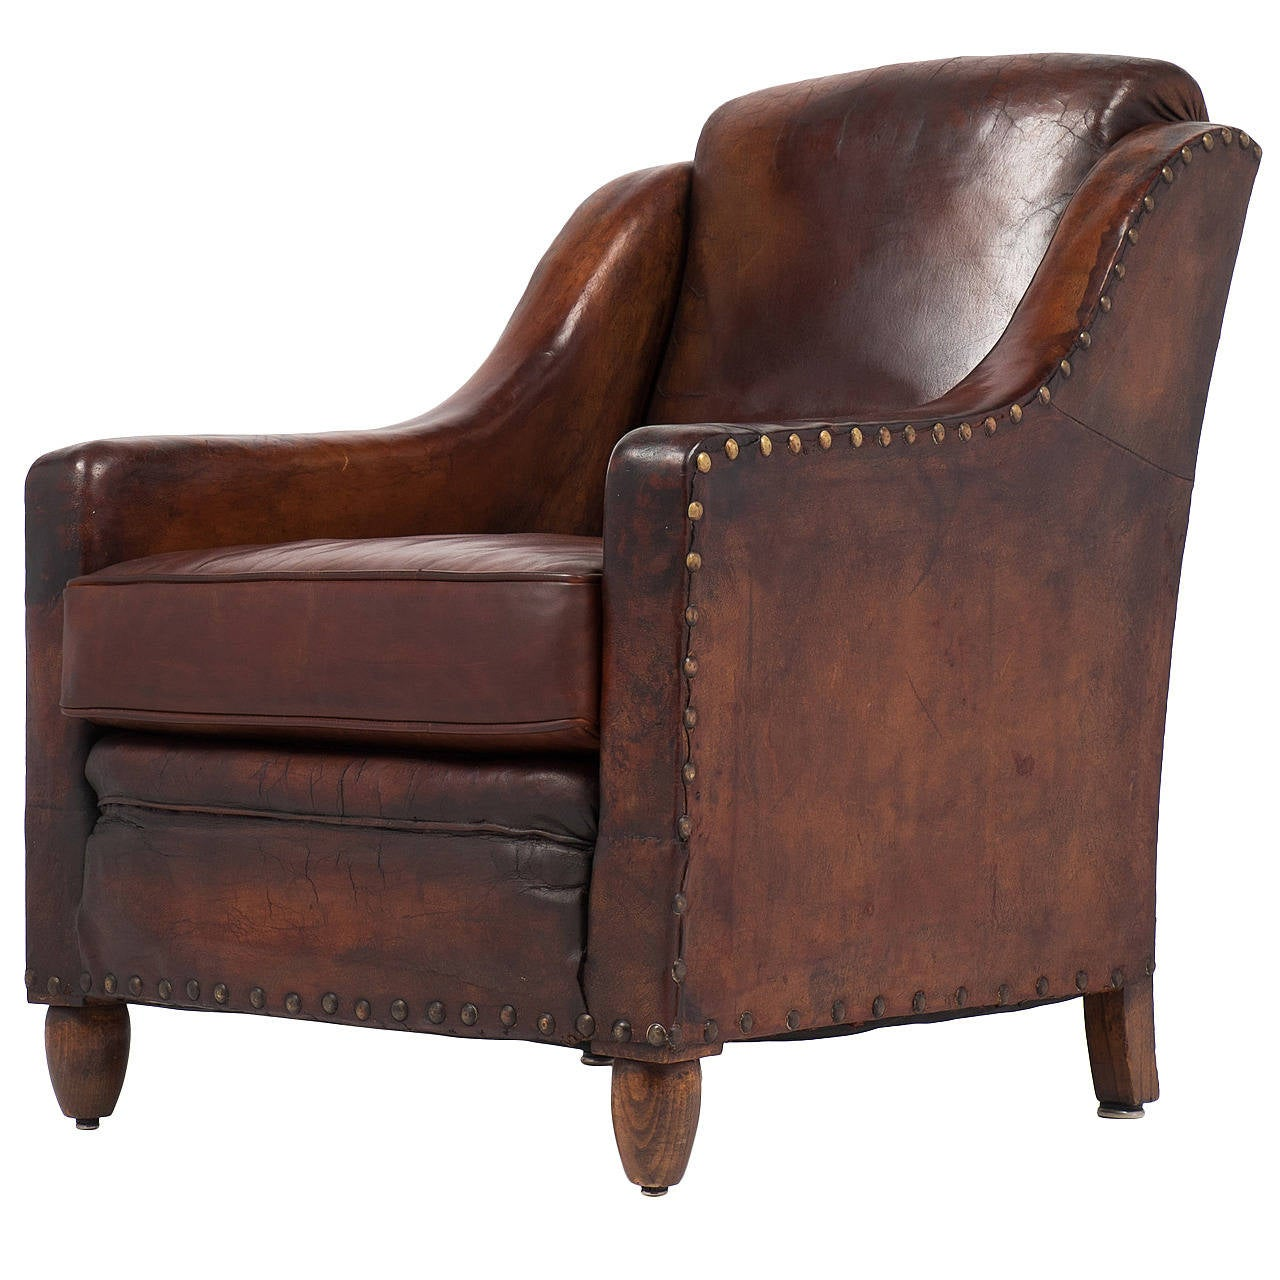 Leather Arm Chairs French Vintage Leather Armchair At 1stdibs